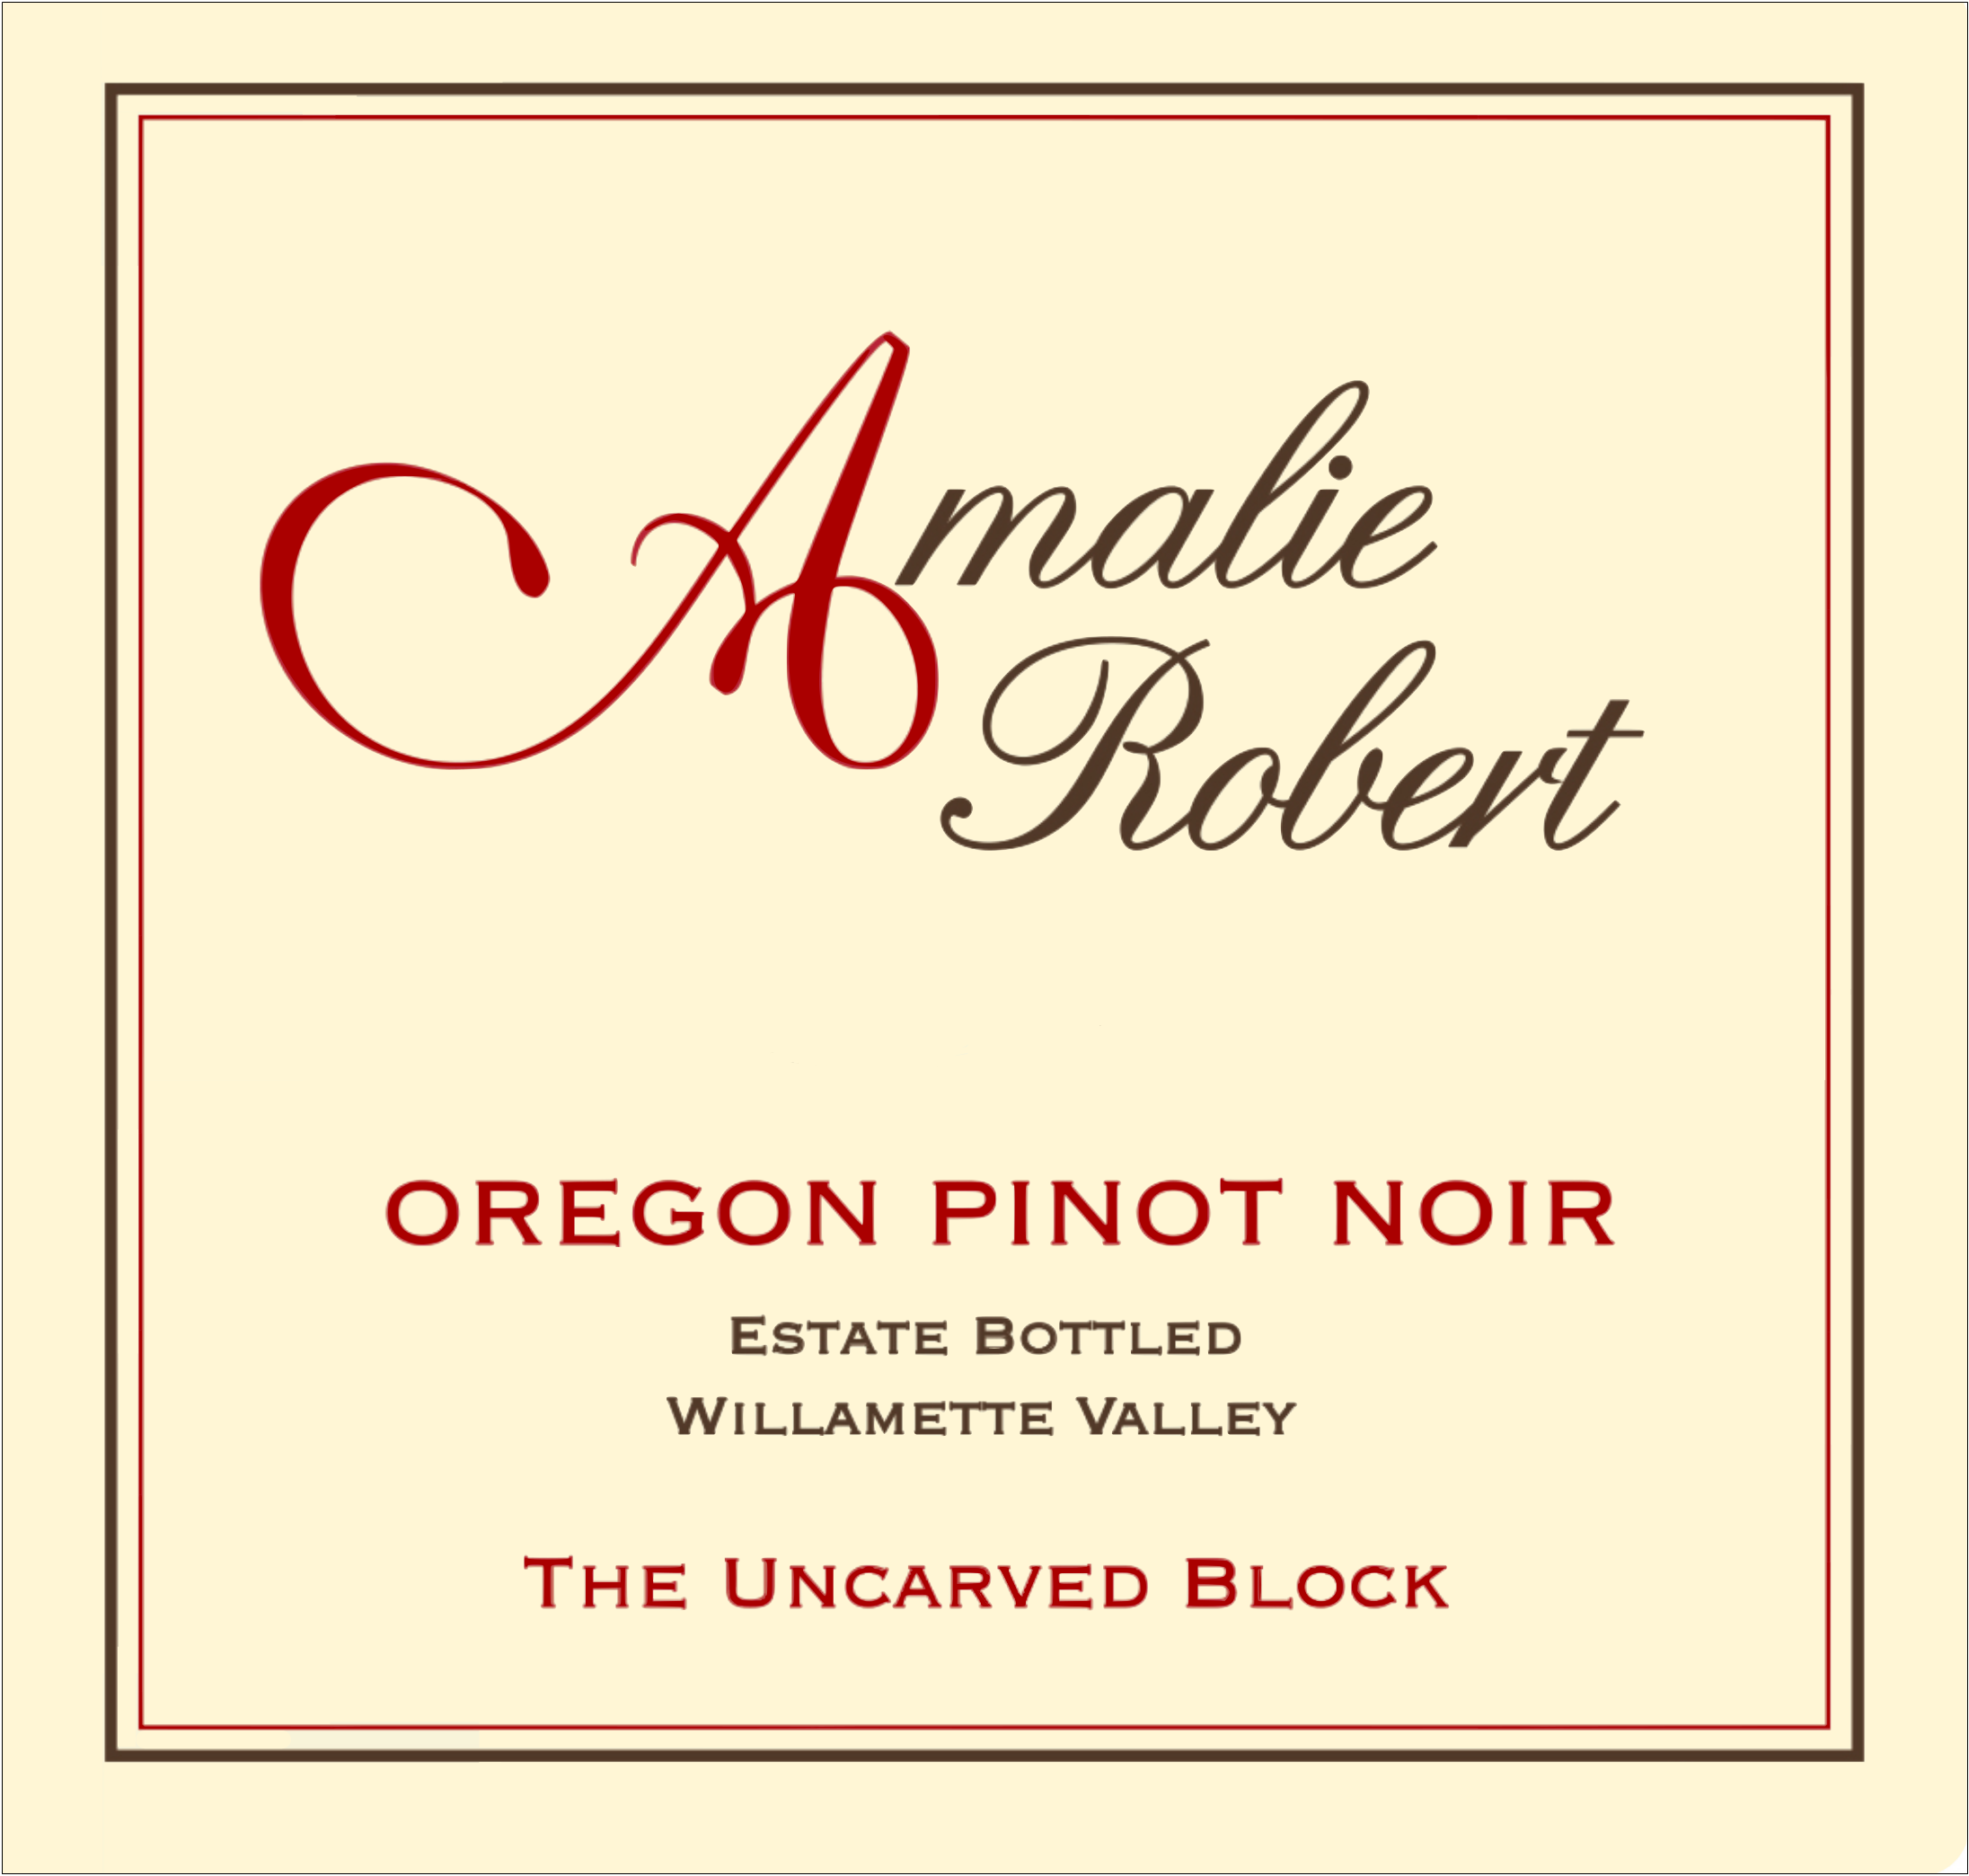 2012 The Uncarved Block Pinot Noir